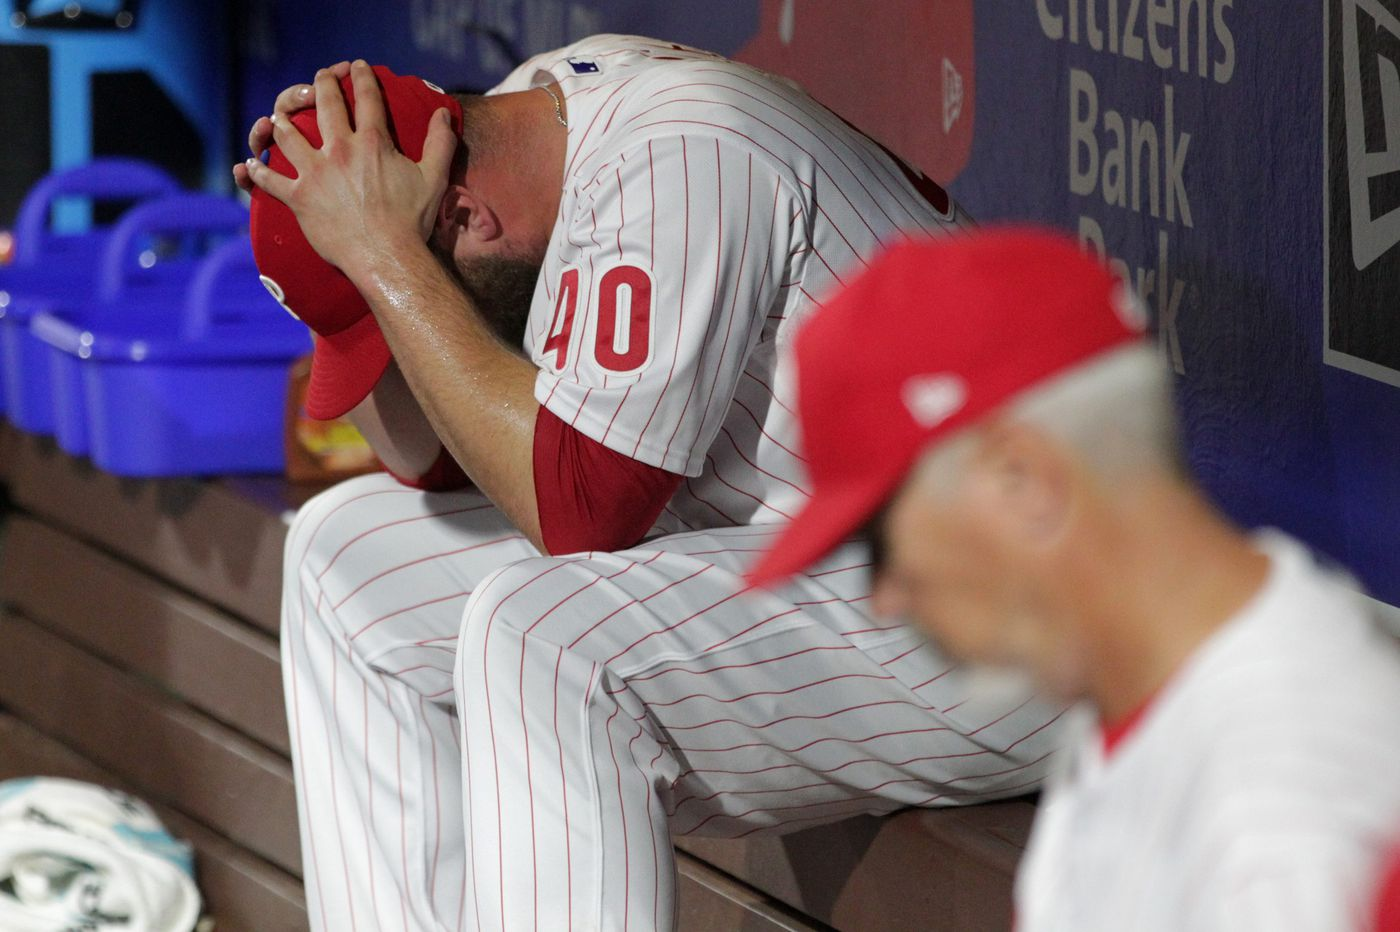 Phillies' bullpen woes persist in loss to Cardinals